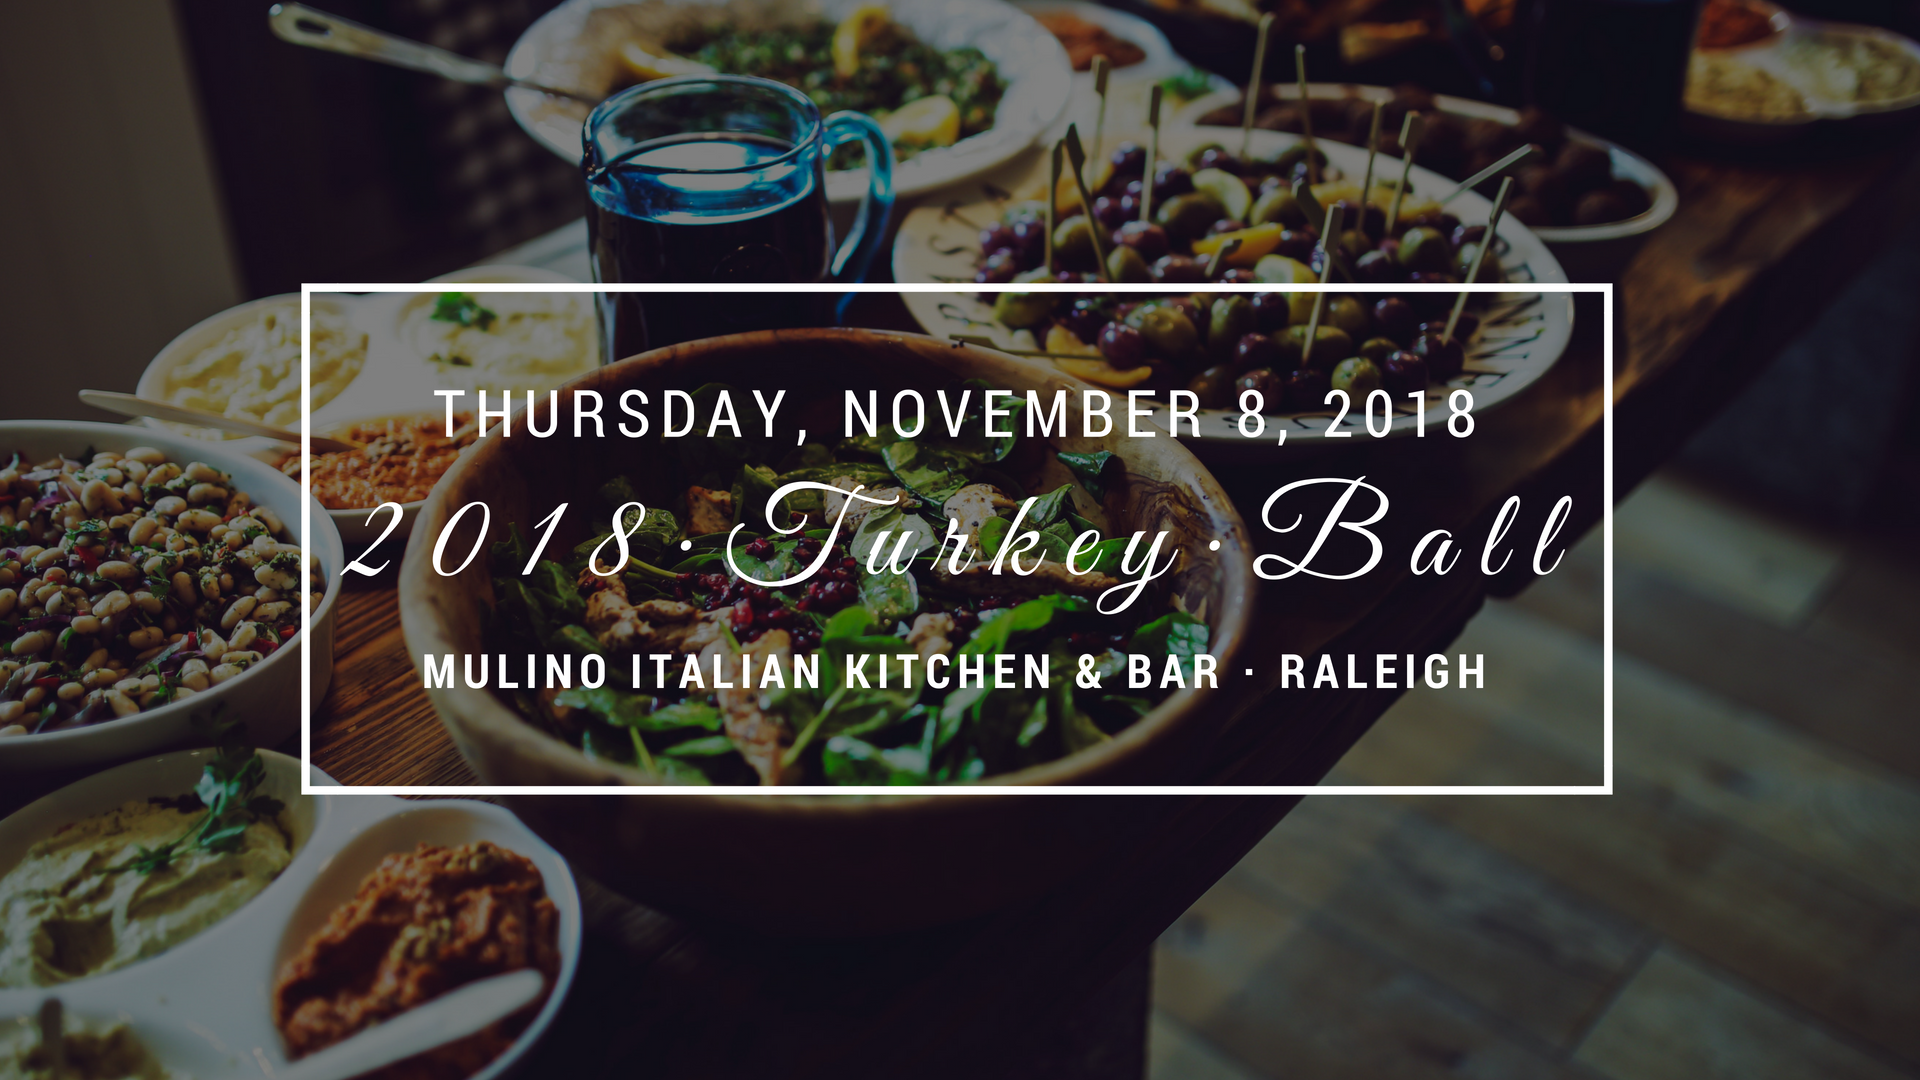 2018 Turkey Ball at Mulino Italian Kitchen & Bar in Downtown Raleigh - Supporting Local Families in Need at Thanksgiving